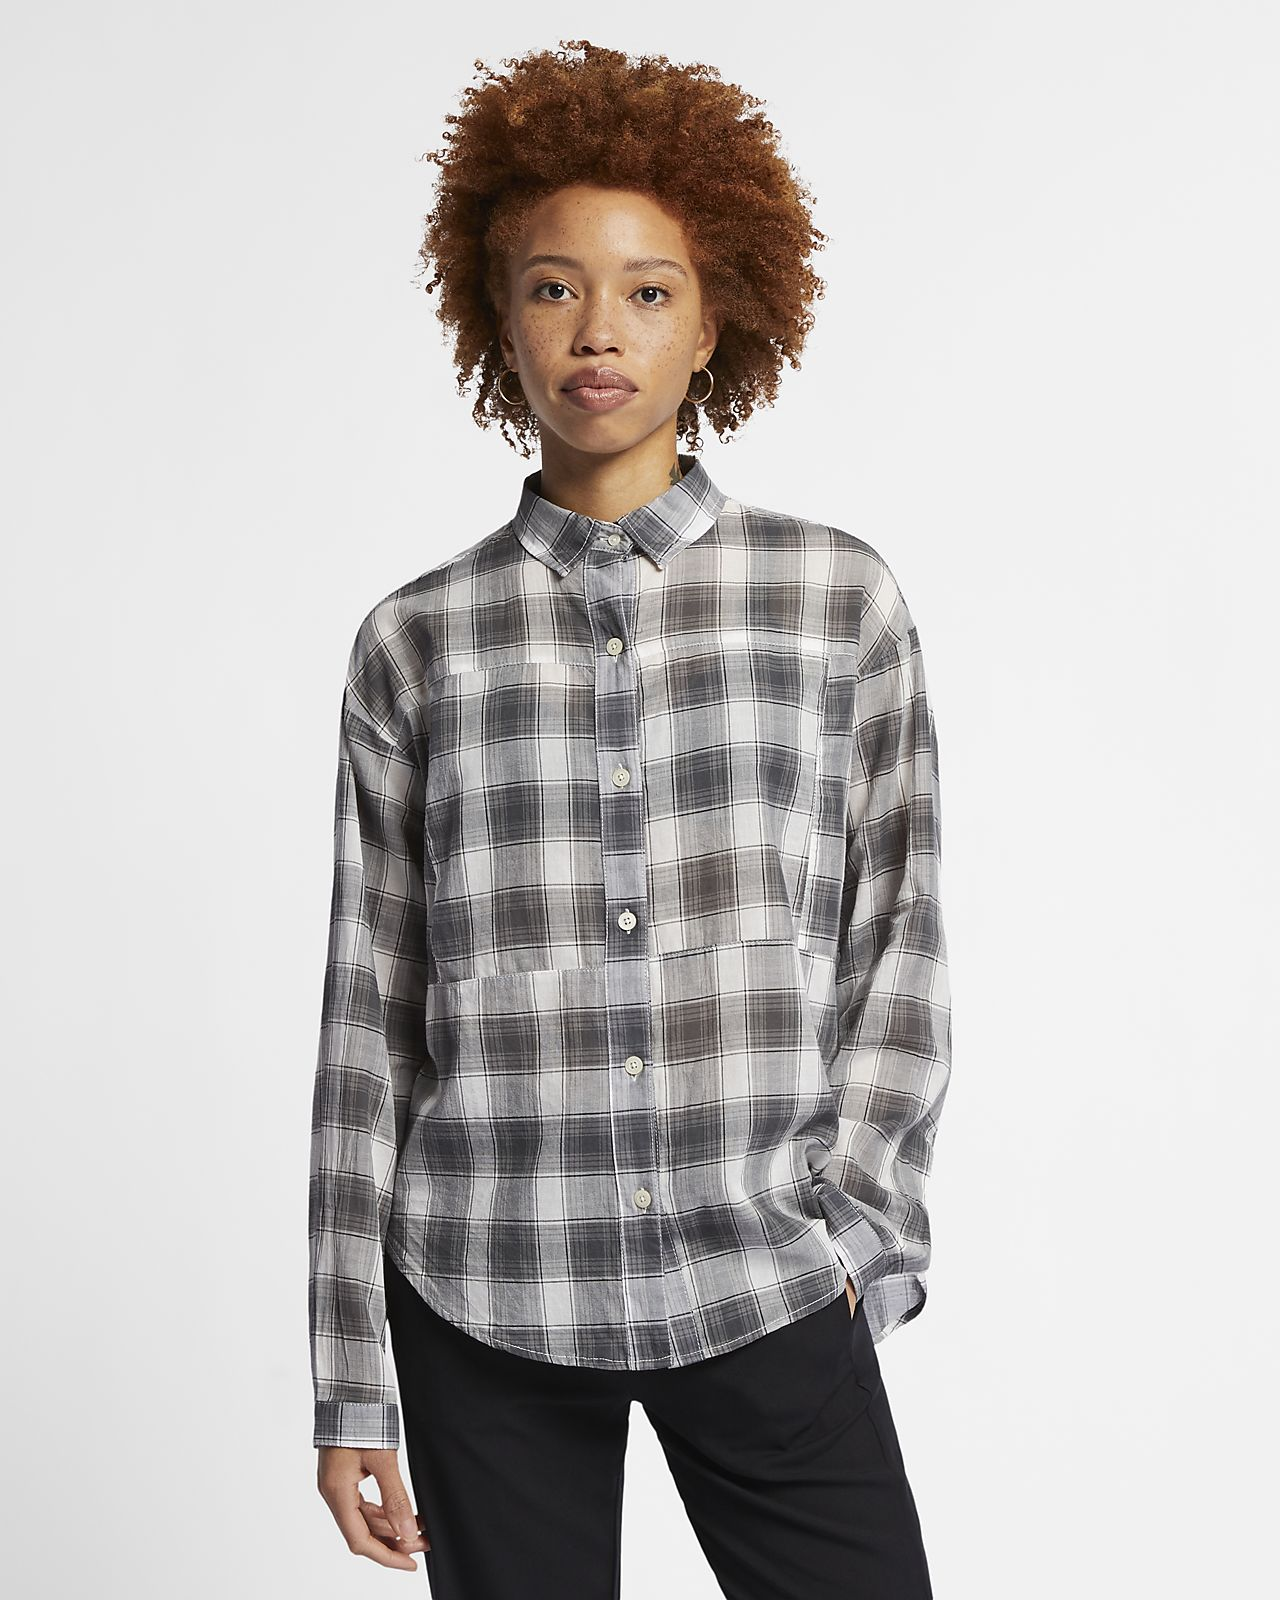 Hurley Wilson Women's Checked Long-Sleeve Top